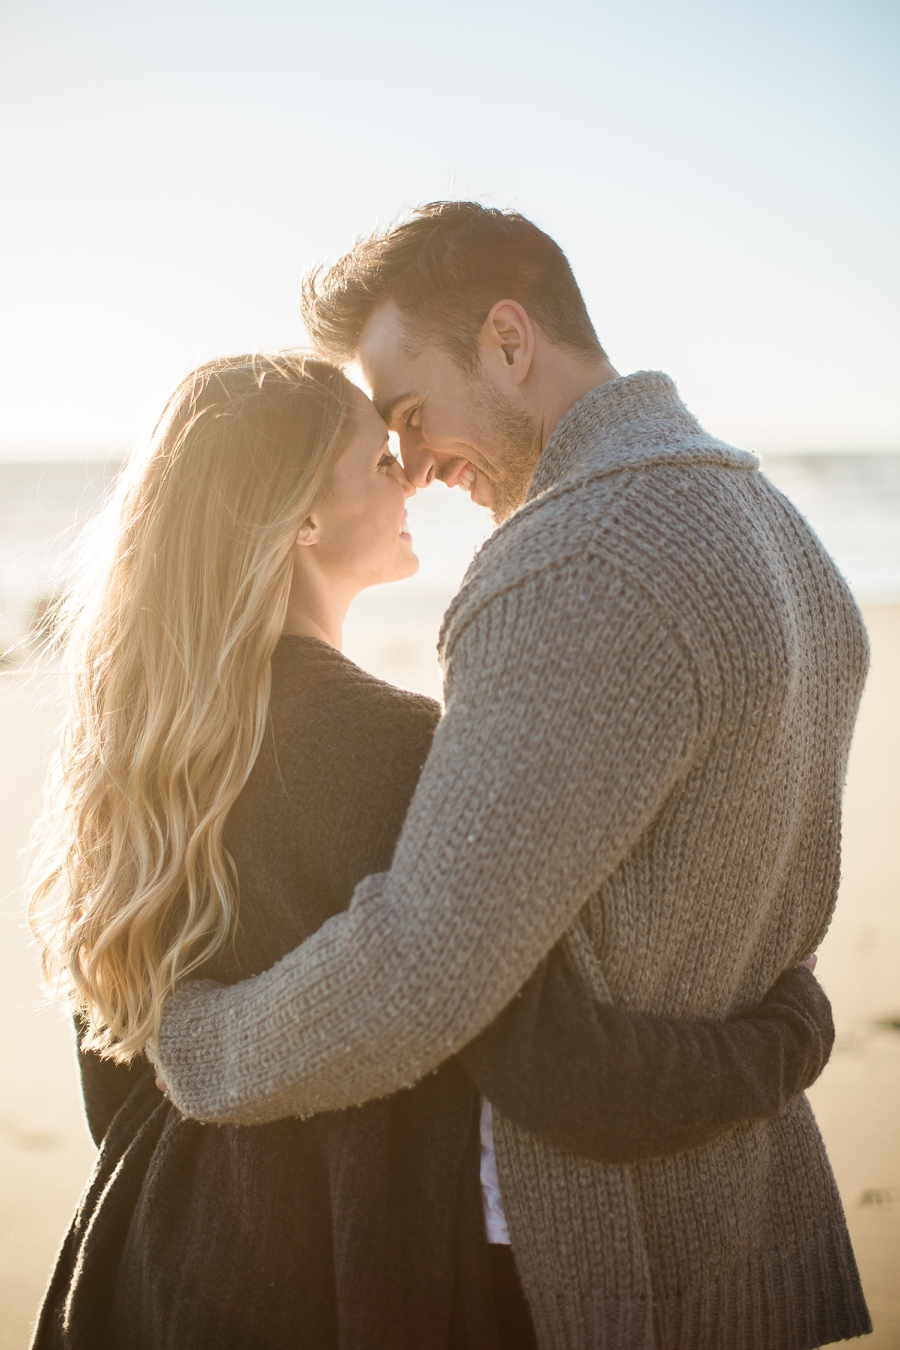 taylor_kinzie_photography_los_angeles_wedding_photographer_beach_engagement_session_0017